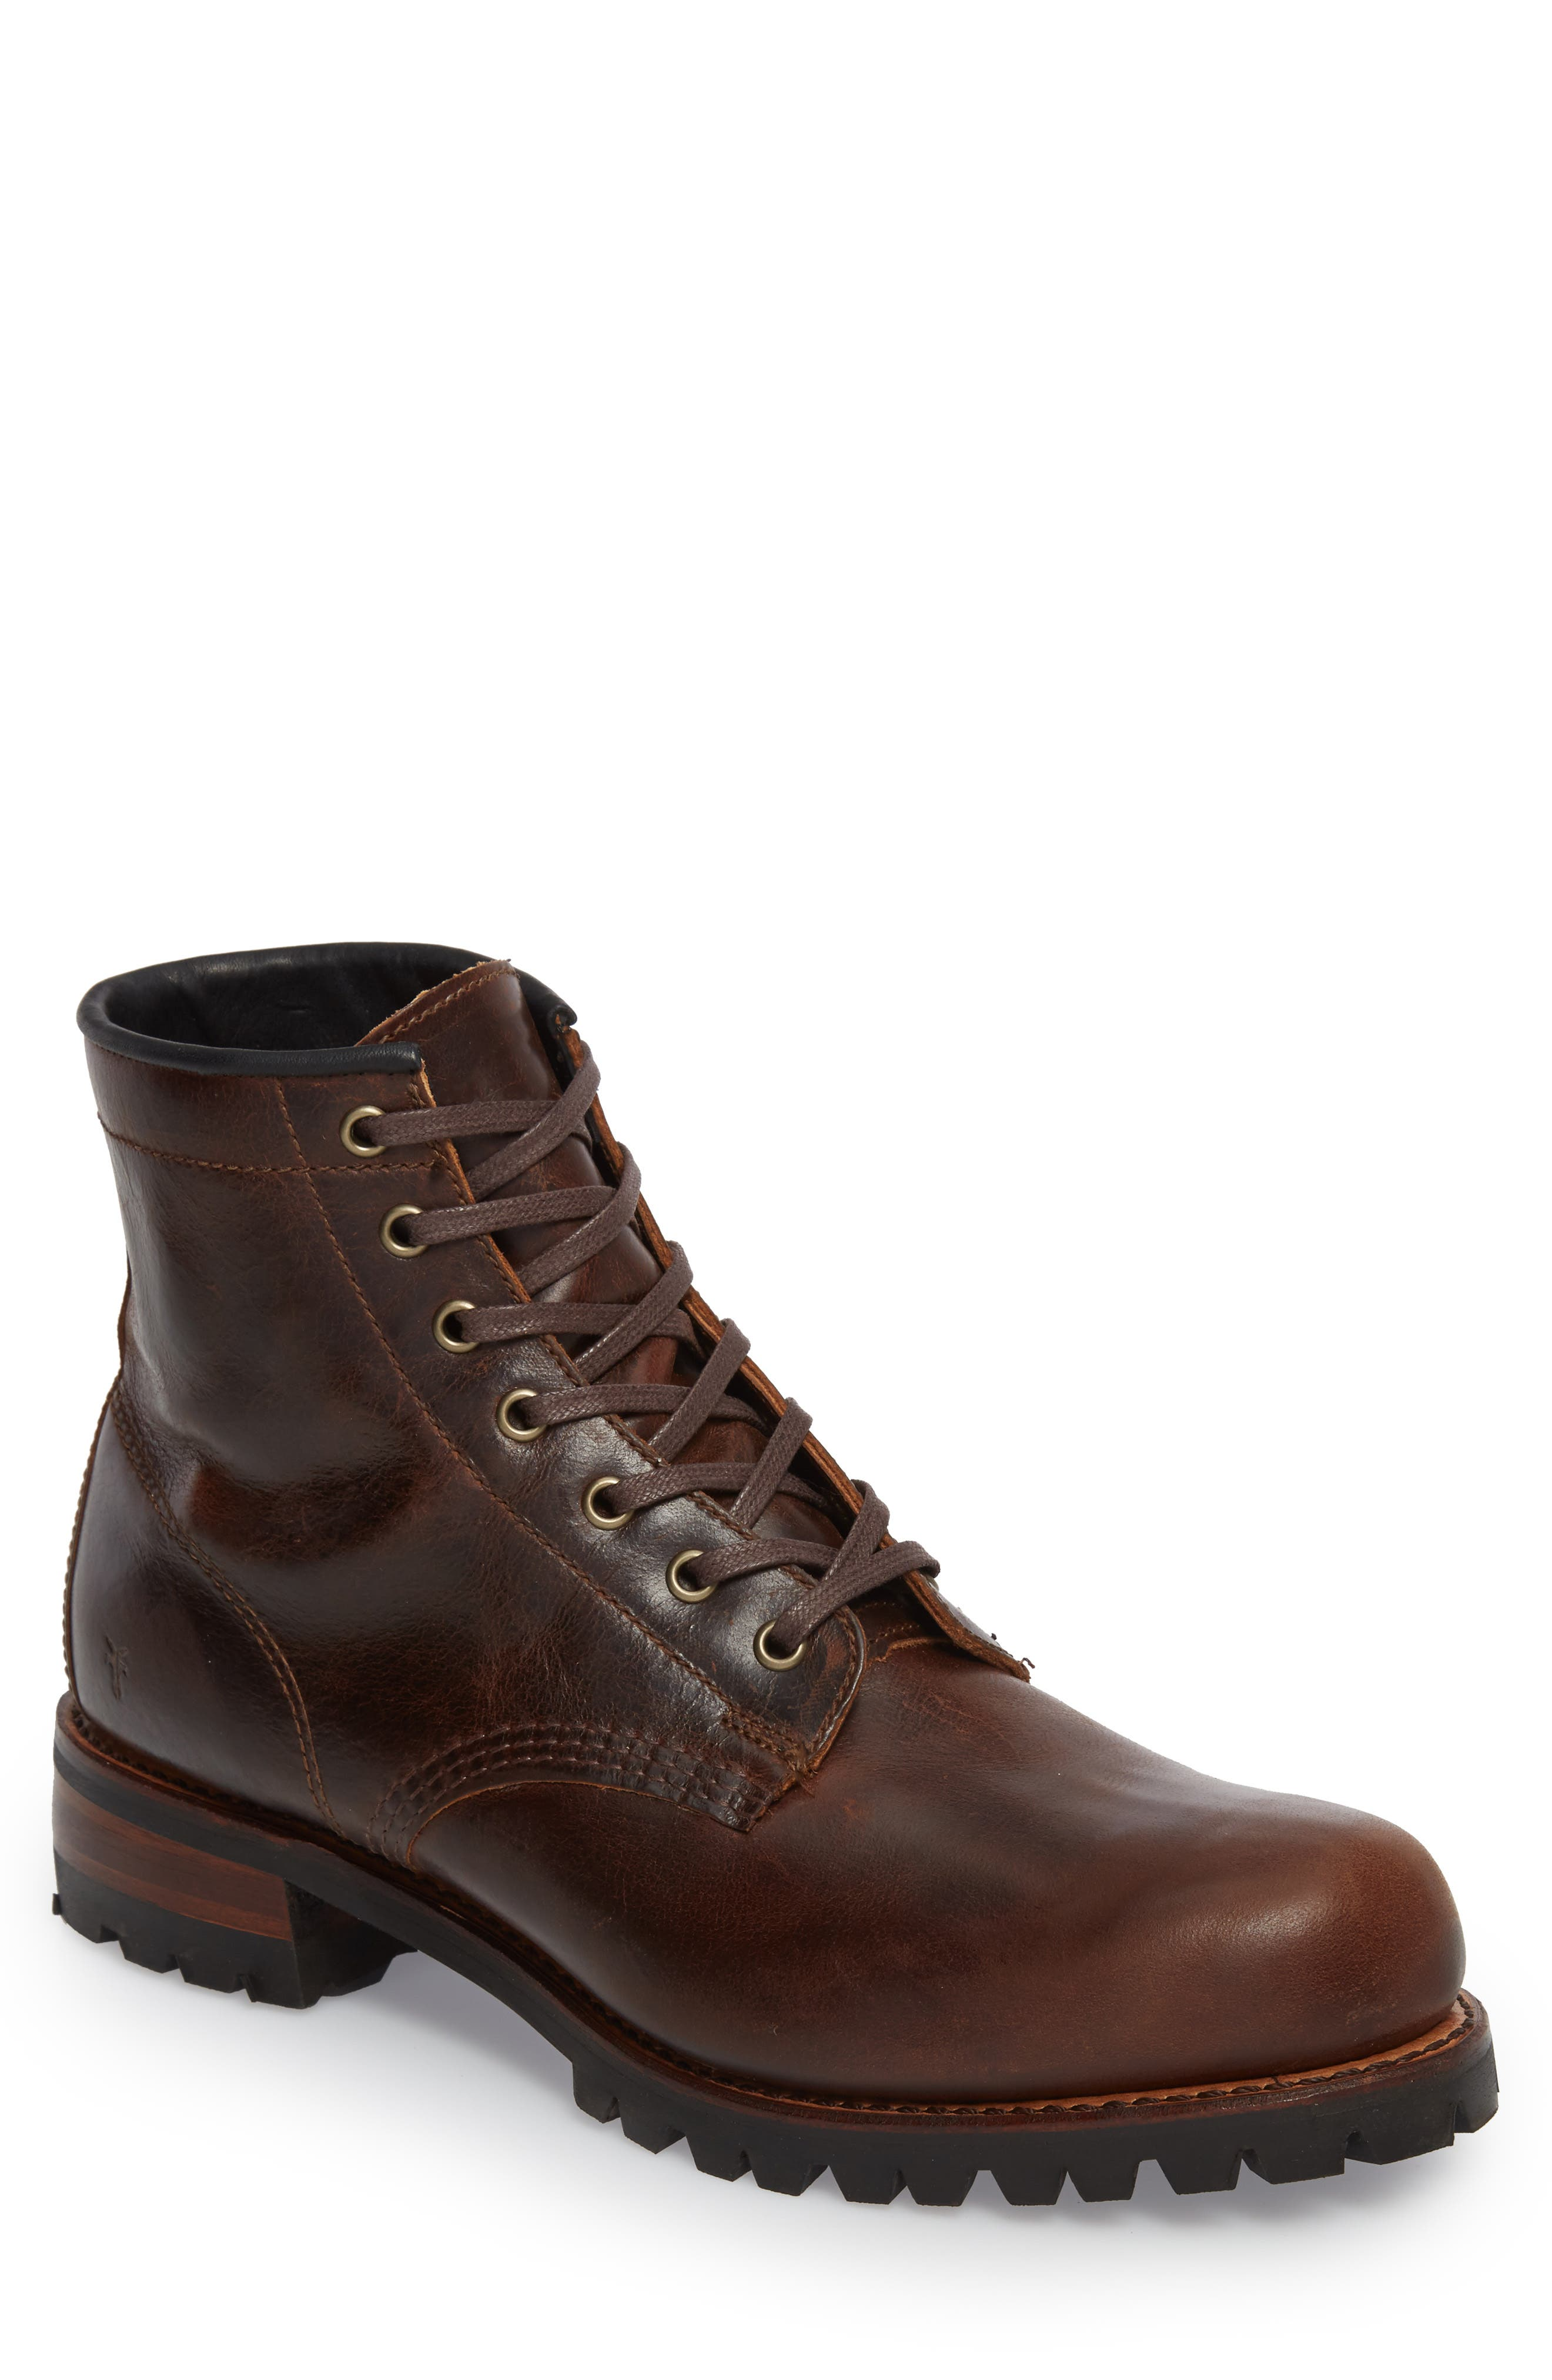 Addison Lace-Up Boot,                             Main thumbnail 1, color,                             Dark Brown Leather